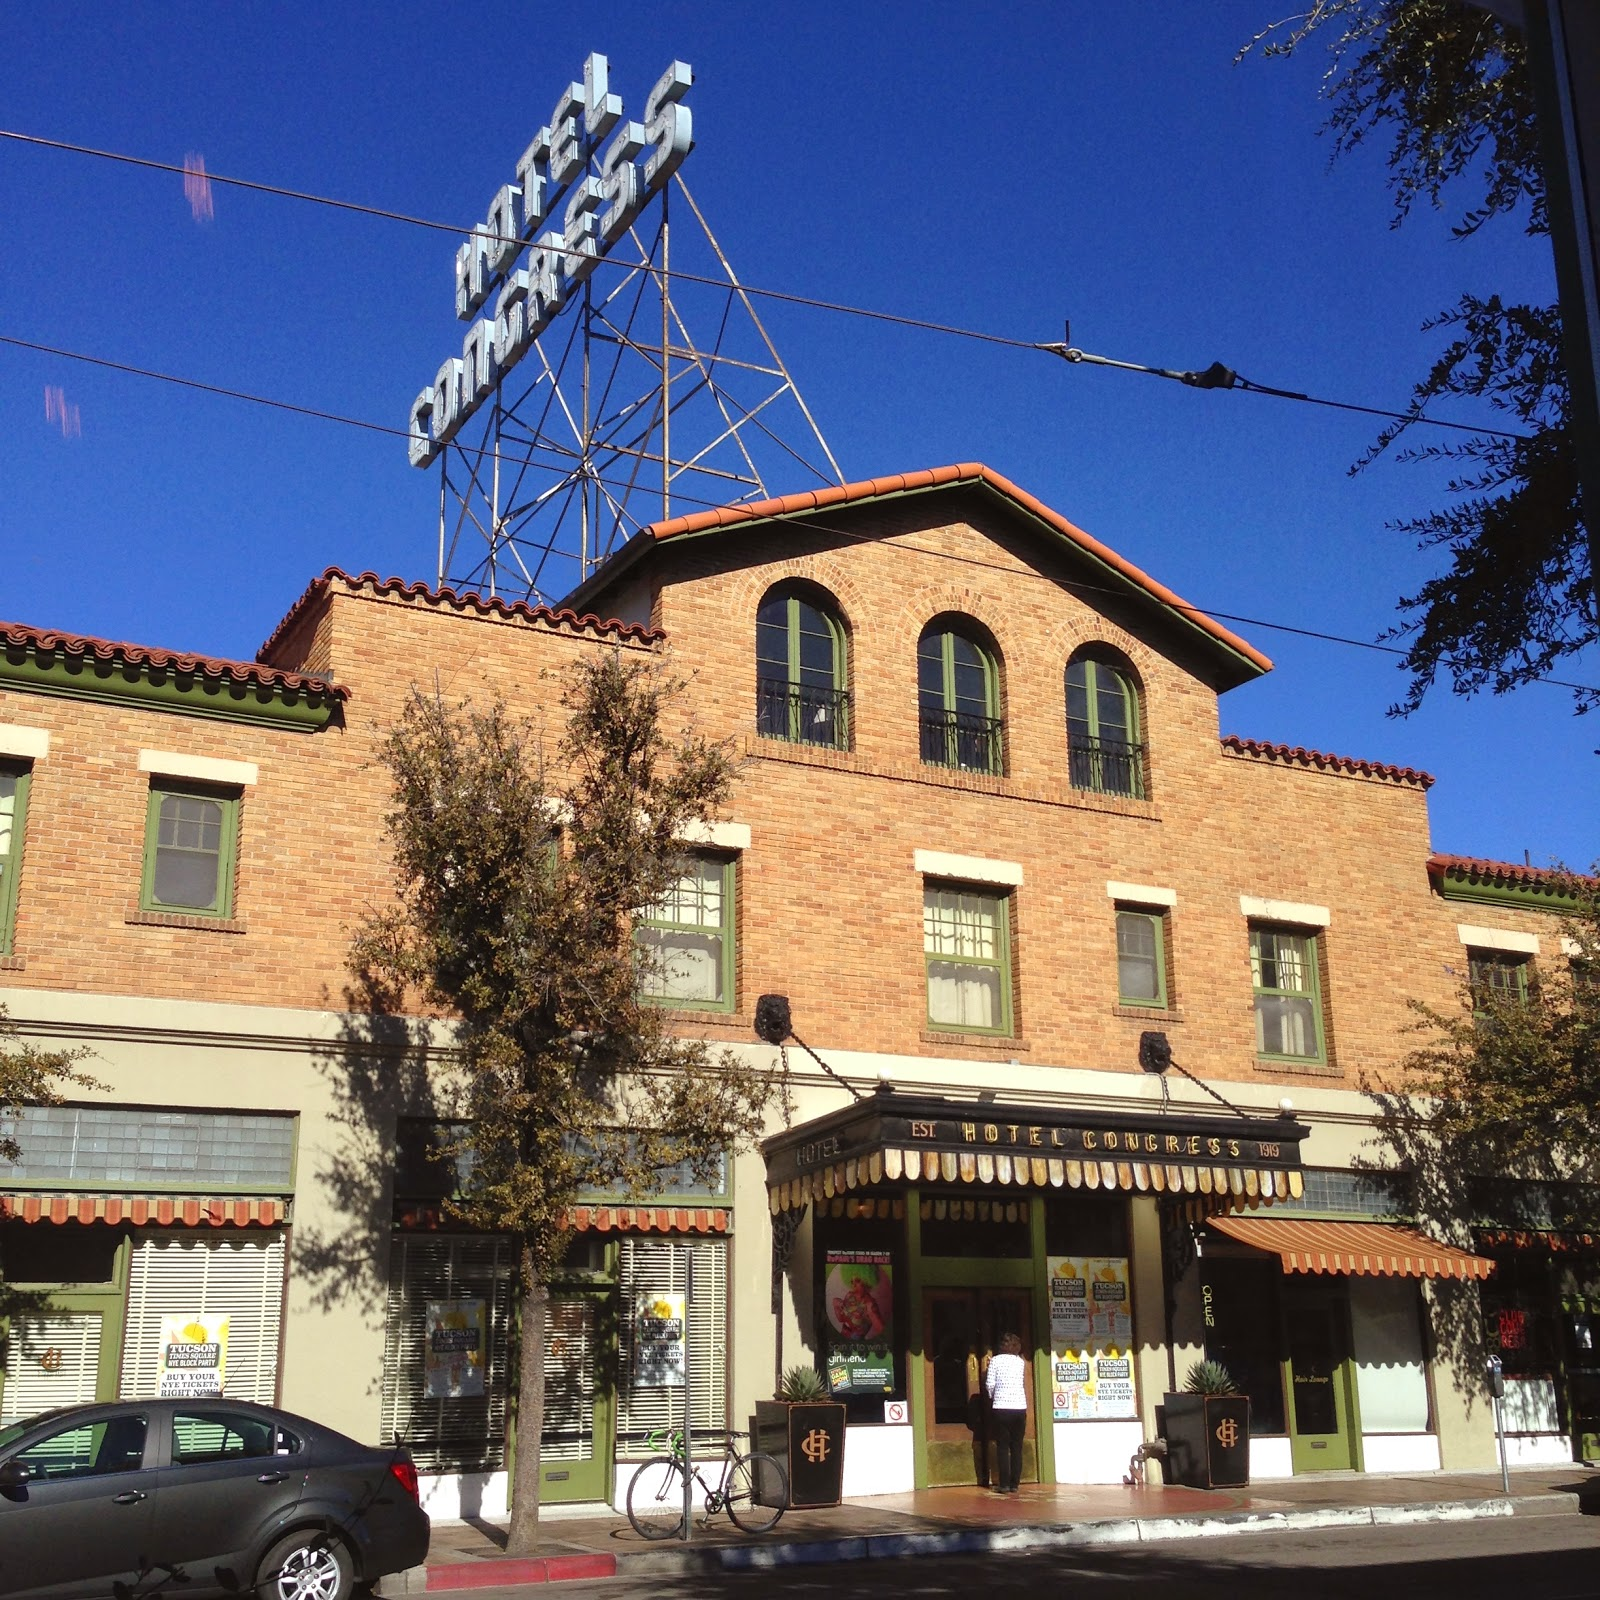 Resort Hotels In Tucson: RETIRE IN STYLE BLOG: Travel: Where To Find A Trendy